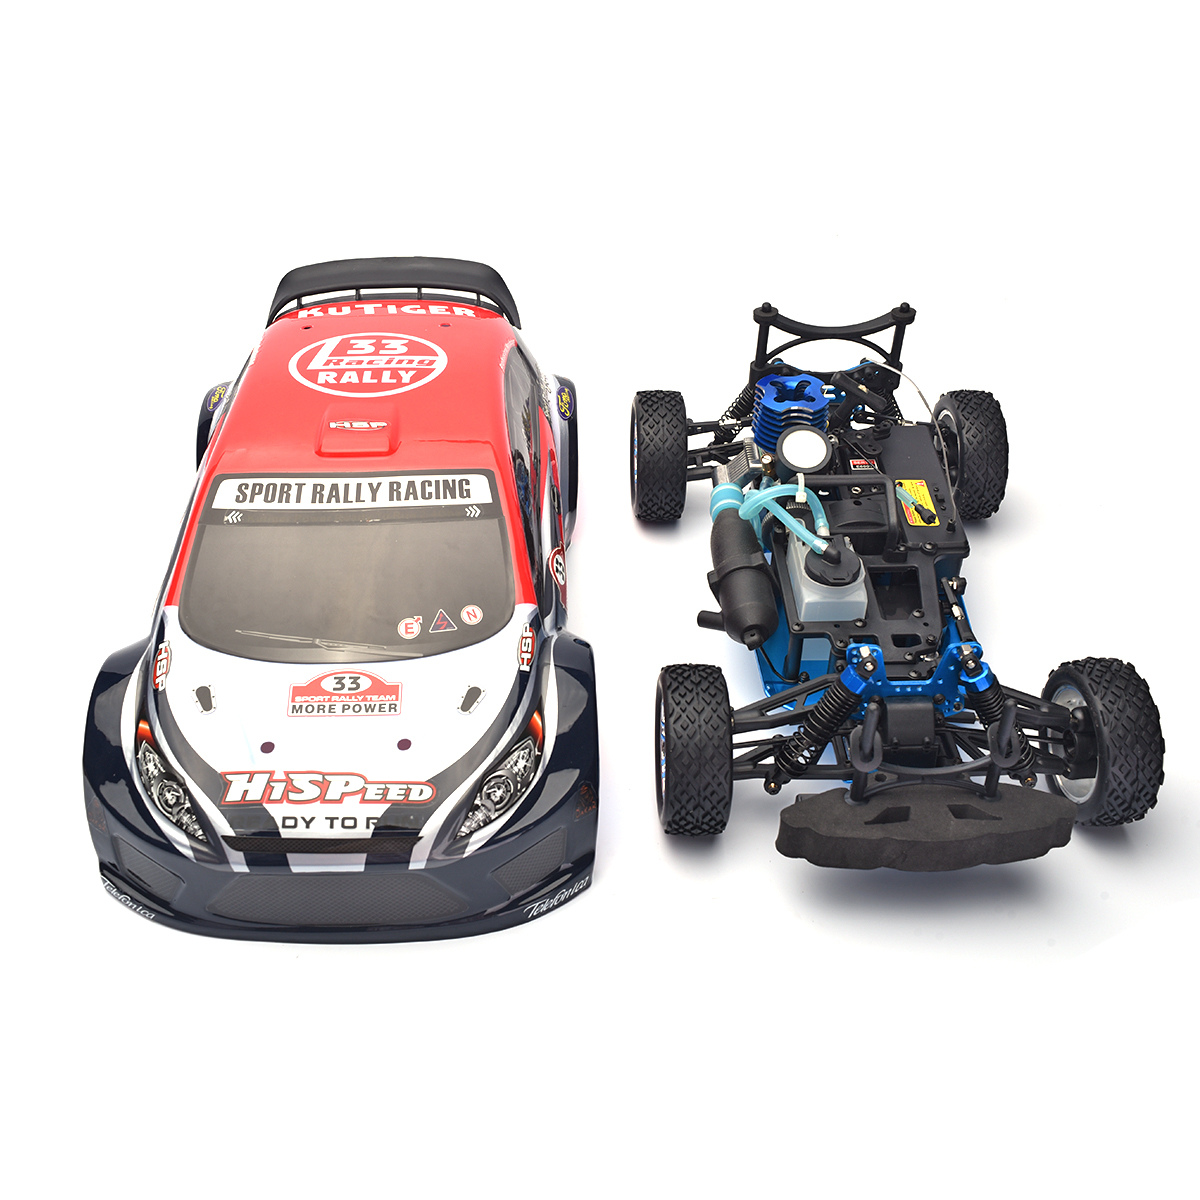 Hsp Rc Car 1 10 Scale Nitro Gas Power 4wd Off Road Truck: KUTIGER HSP 94177 Nitro Off-road Sport Rally Racing 1:10